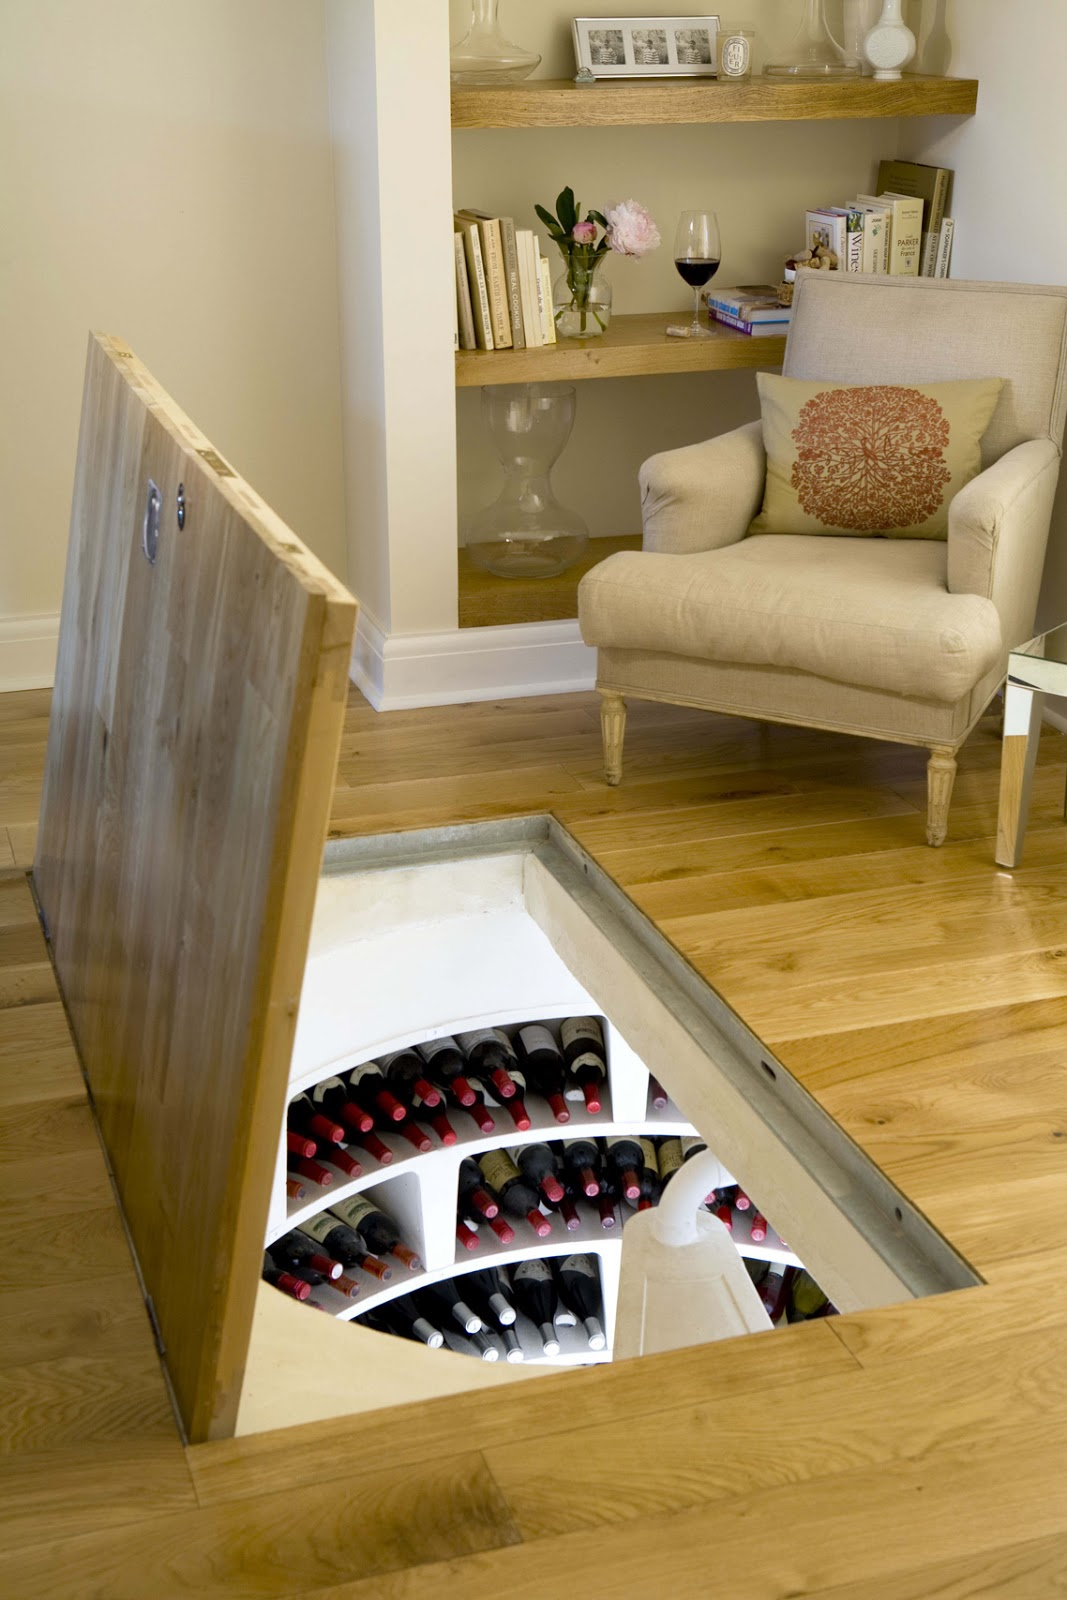 Greatwineonline Successfully Cellaring Your Wine Collection